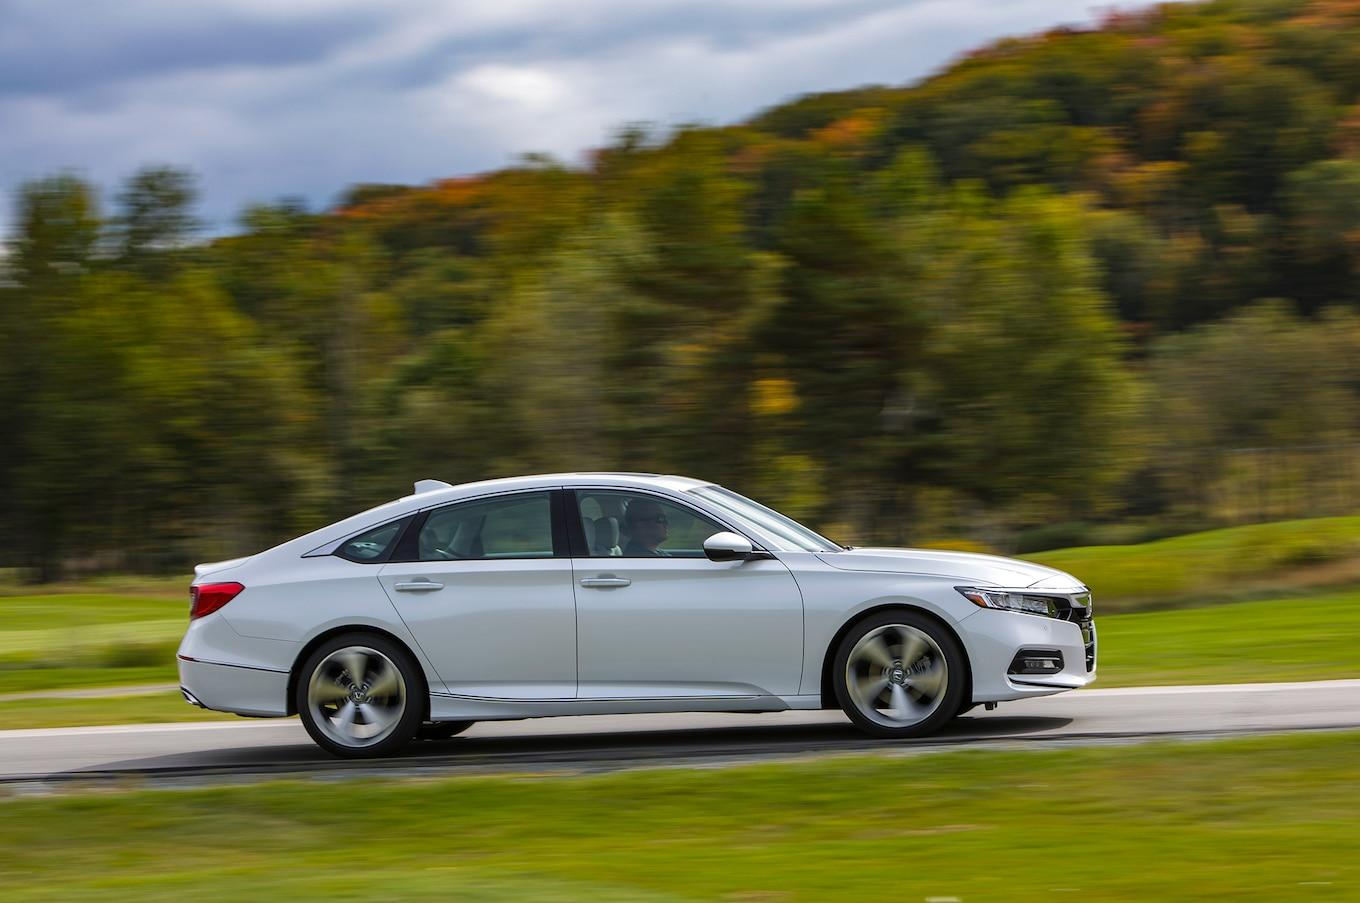 2018 Honda Accord Touring 1.5T Side Wallpaper (70) - HD Wallpapers